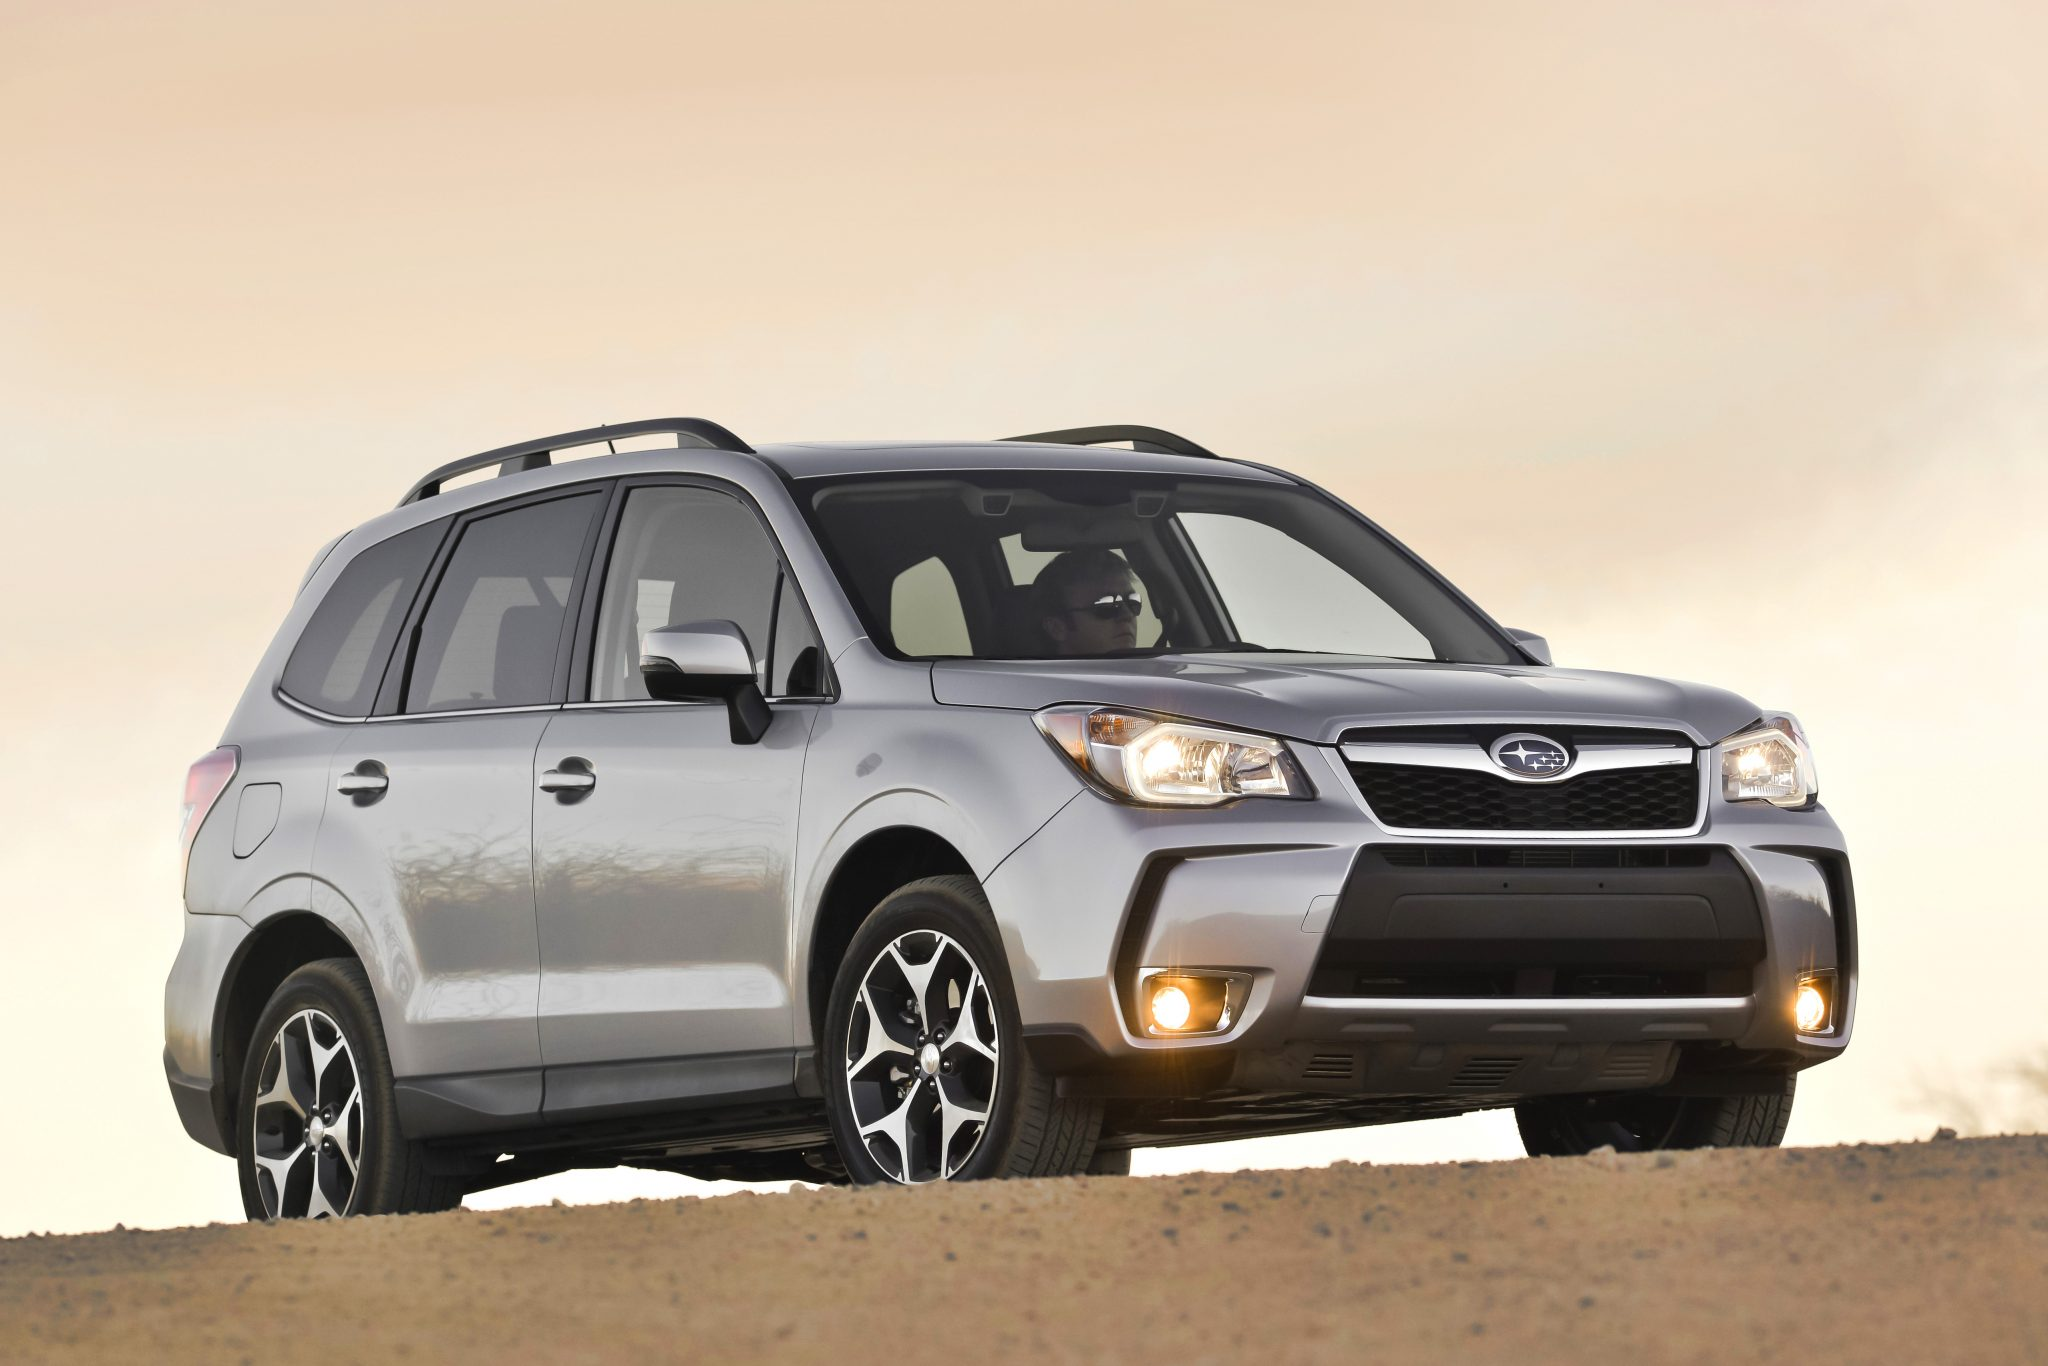 2015 subaru forester overview the news wheel. Black Bedroom Furniture Sets. Home Design Ideas